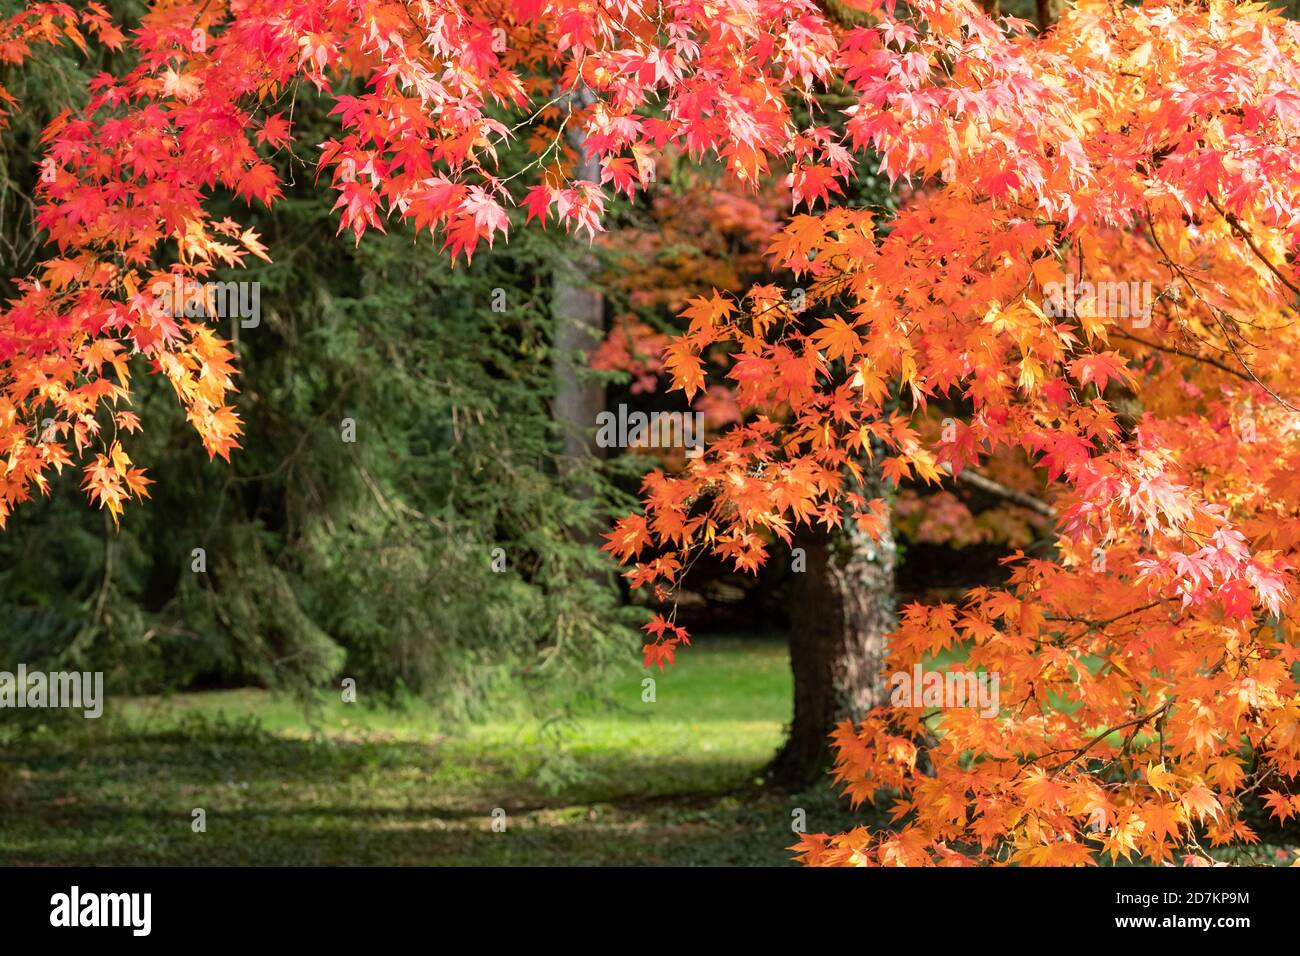 Autumn leaves. Acer and maple trees in a blaze of colour, photographed at Westonbirt Arboretum, Gloucestershire, UK in the month of October. Stock Photo